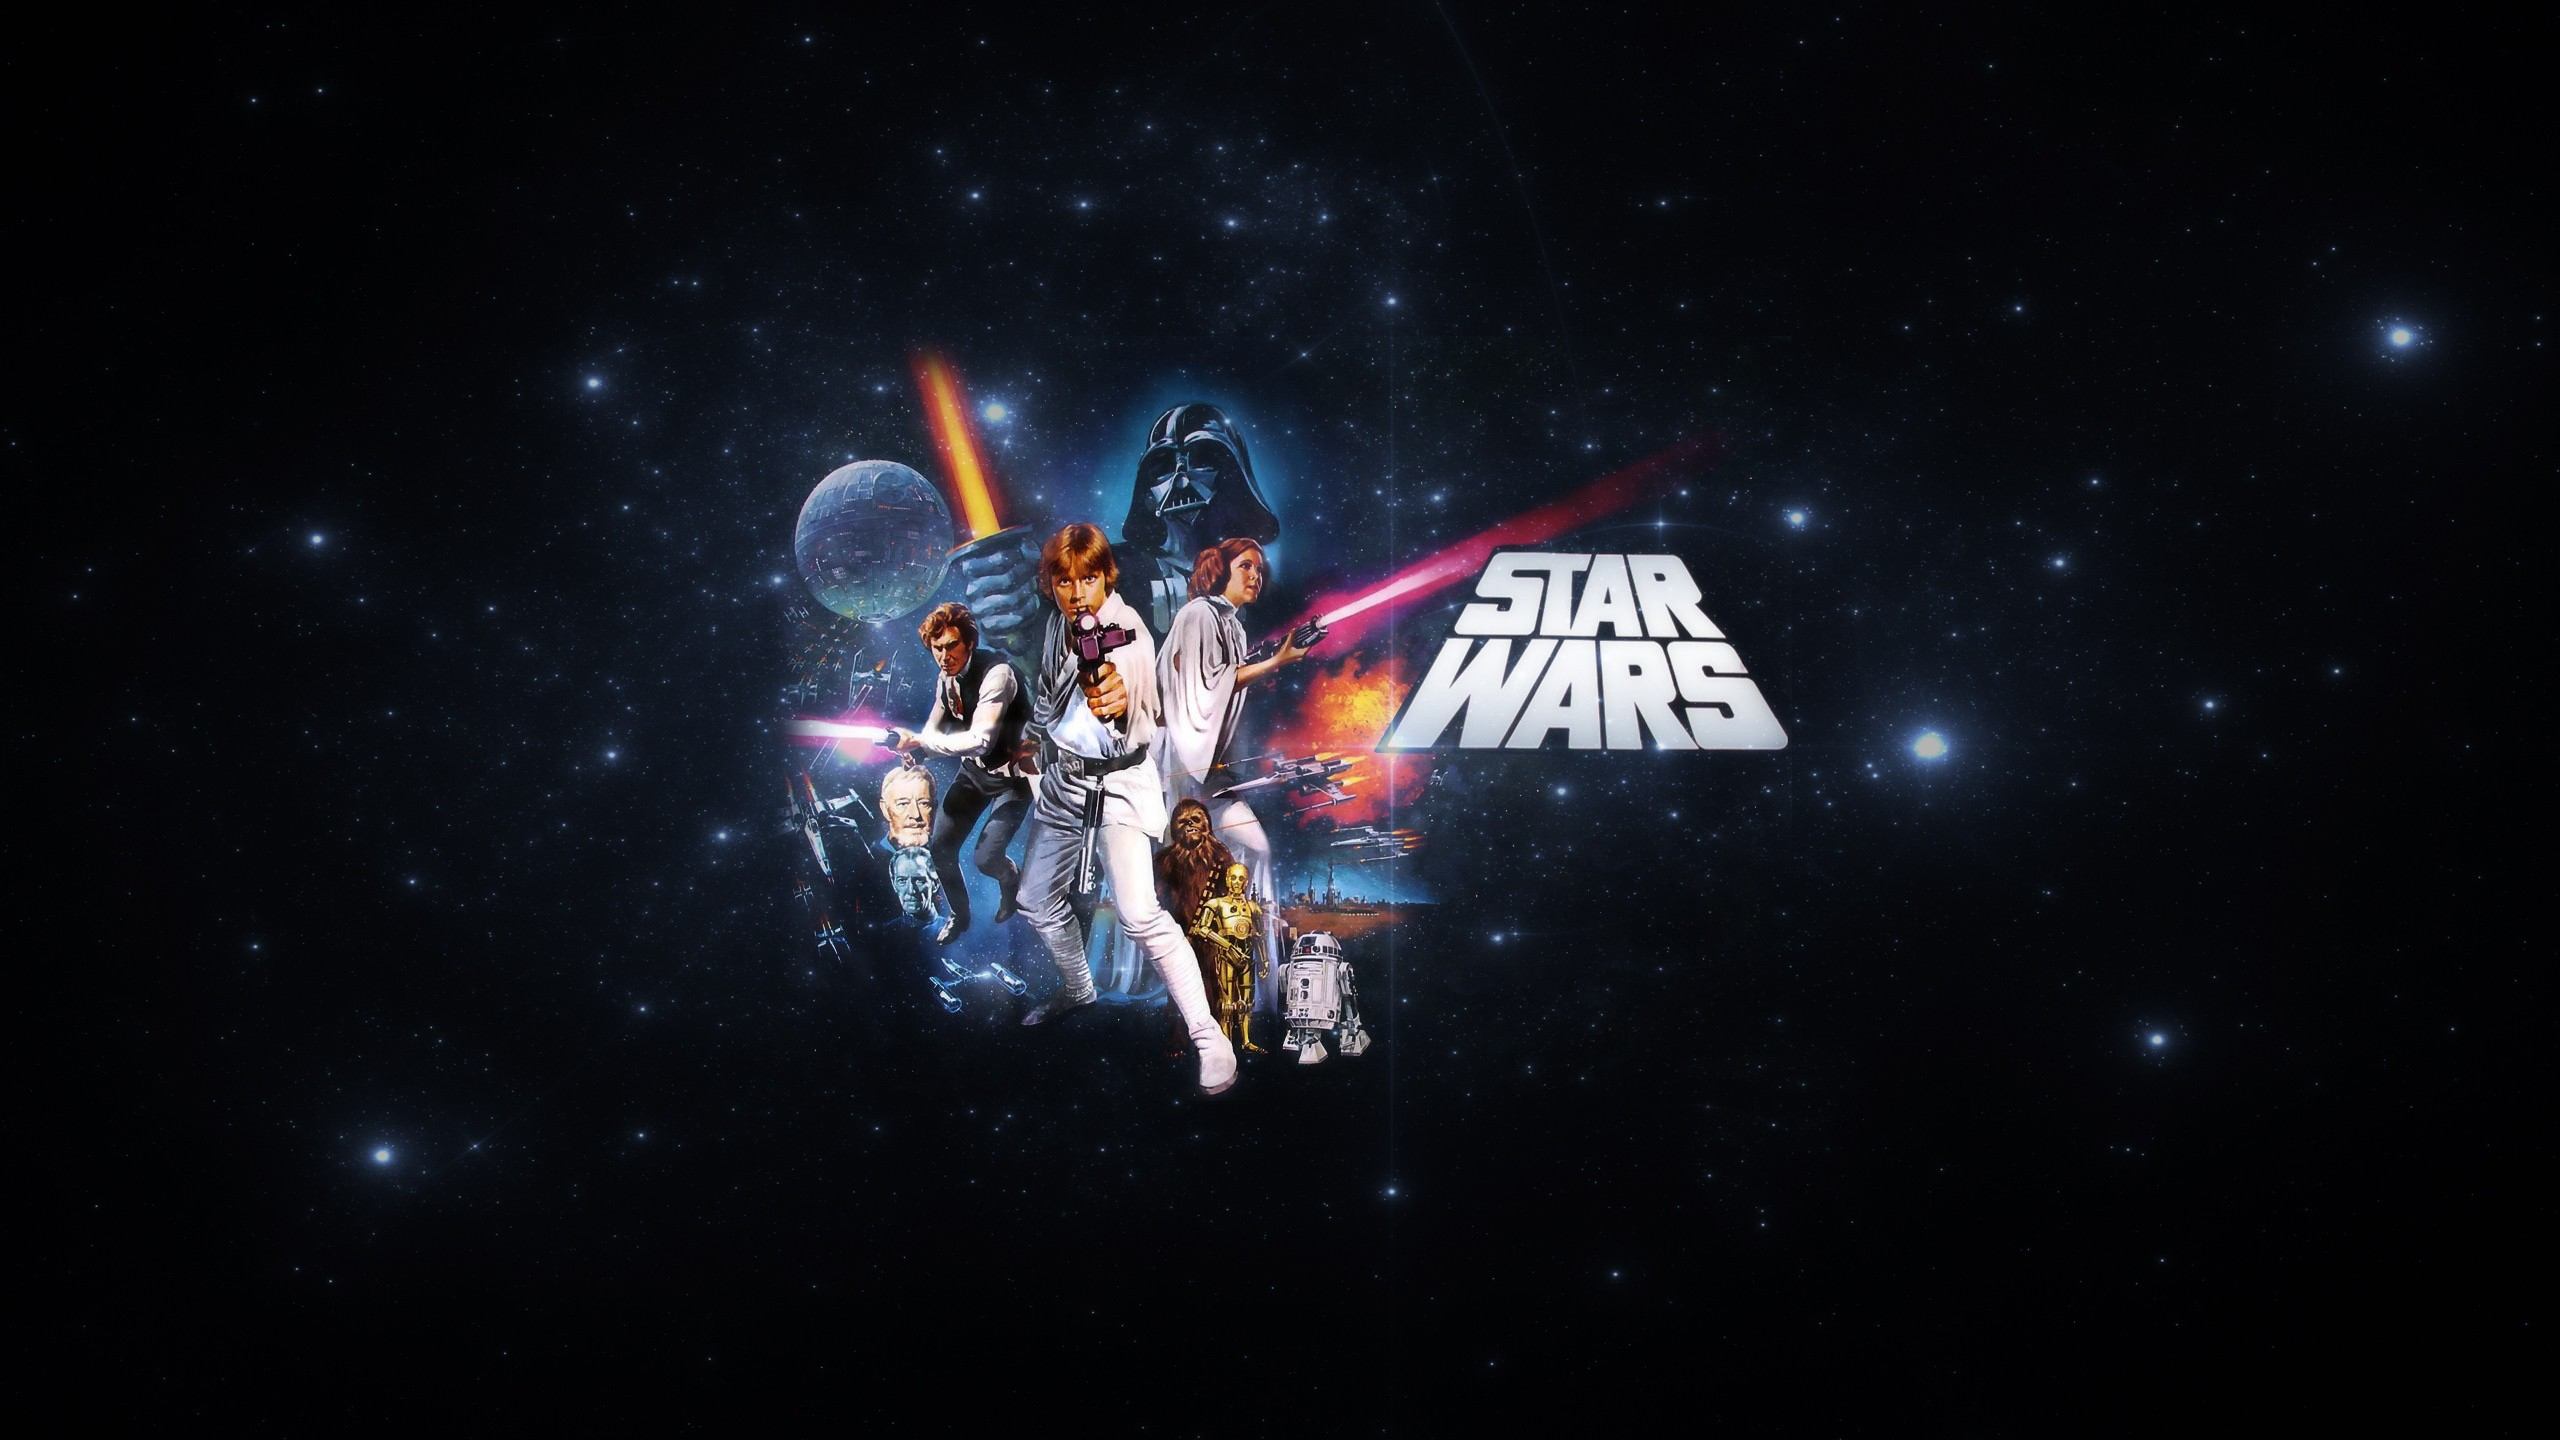 Star Wars Wallpaper 2560x1440 ·① Download Free Amazing HD